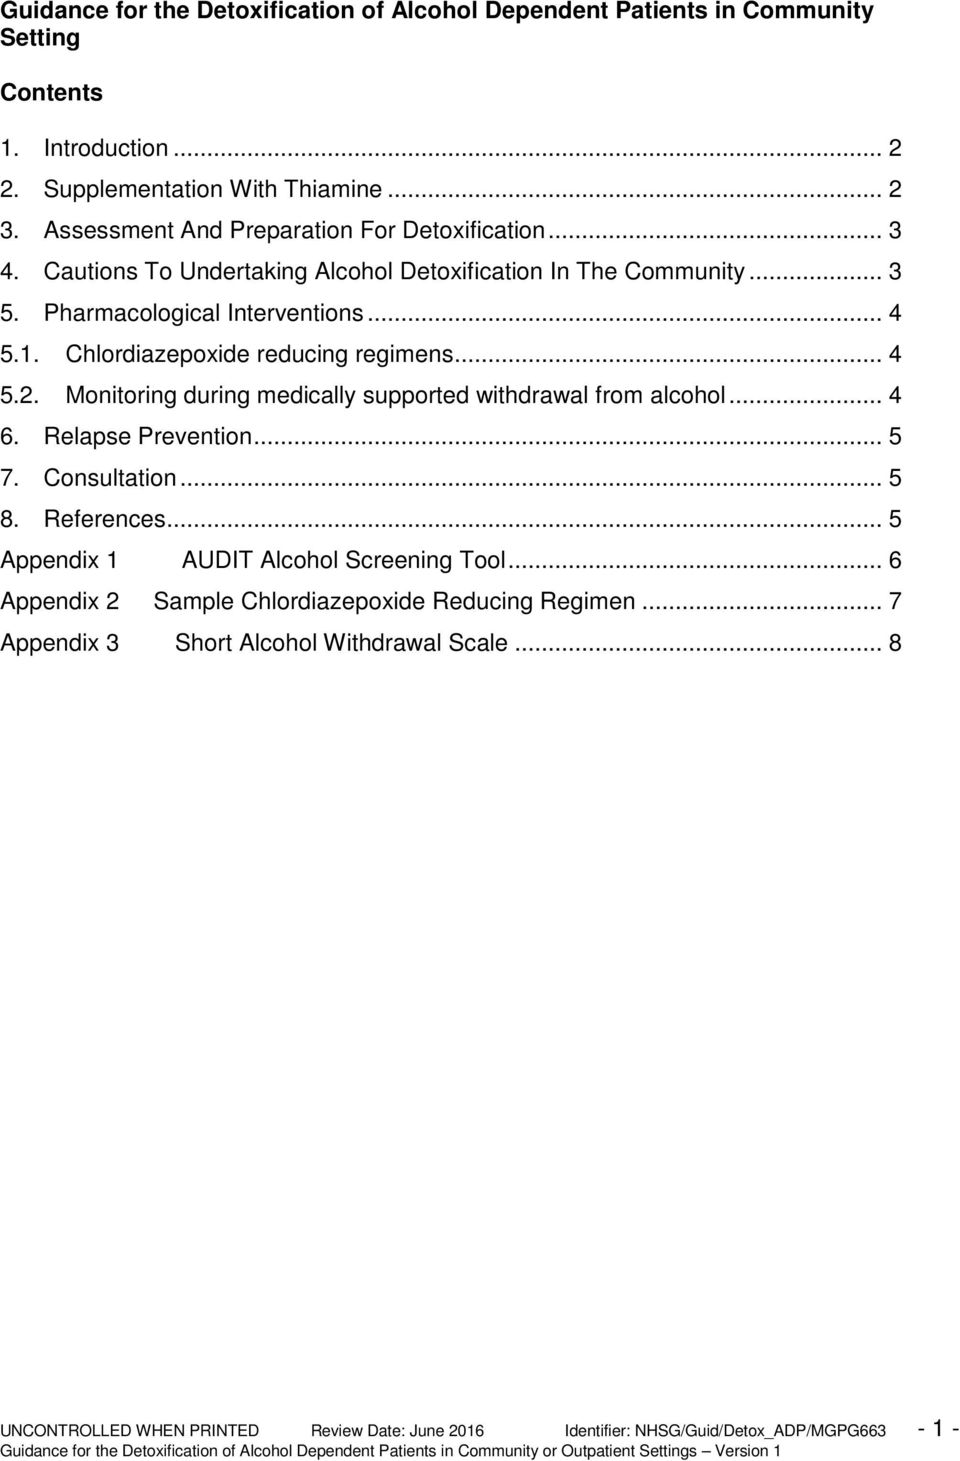 Chlordiazepoxide reducing regimens... 4 5.2. Monitoring during medically supported withdrawal from alcohol... 4 6. Relapse Prevention... 5 7. Consultation... 5 8. References.